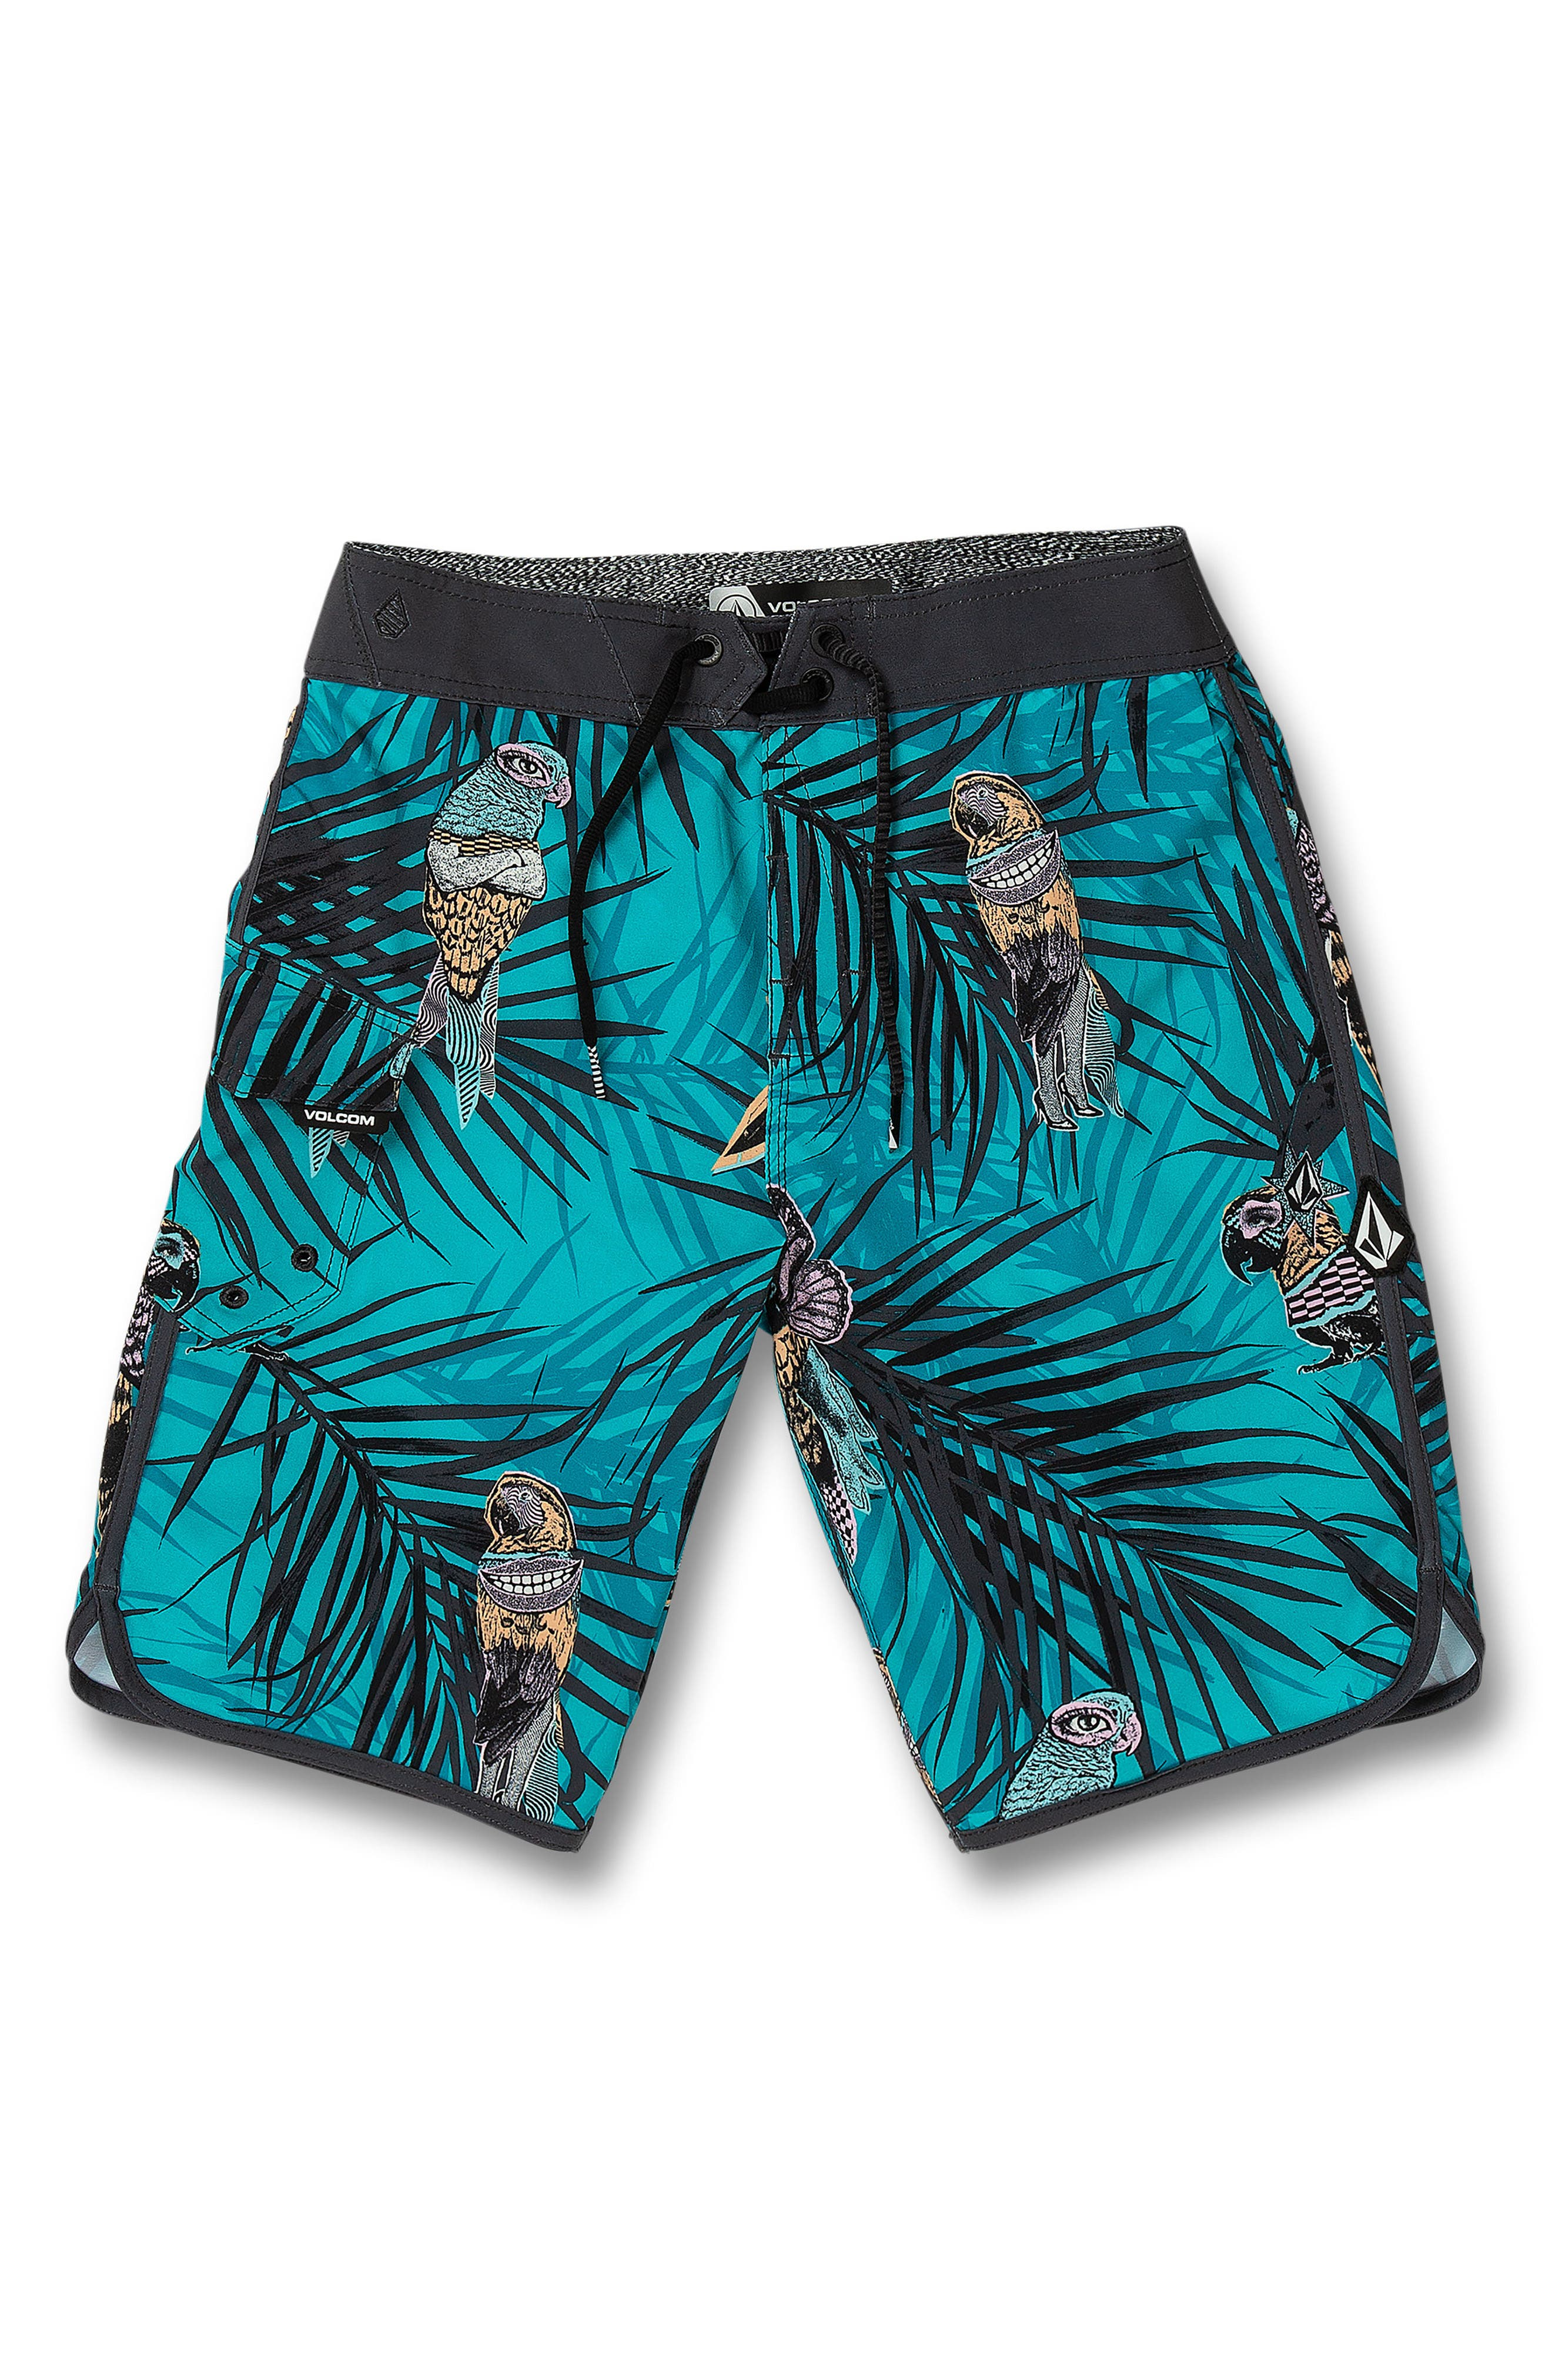 Boys Volcom Parrot Mod Board Shorts Size 23  Blue